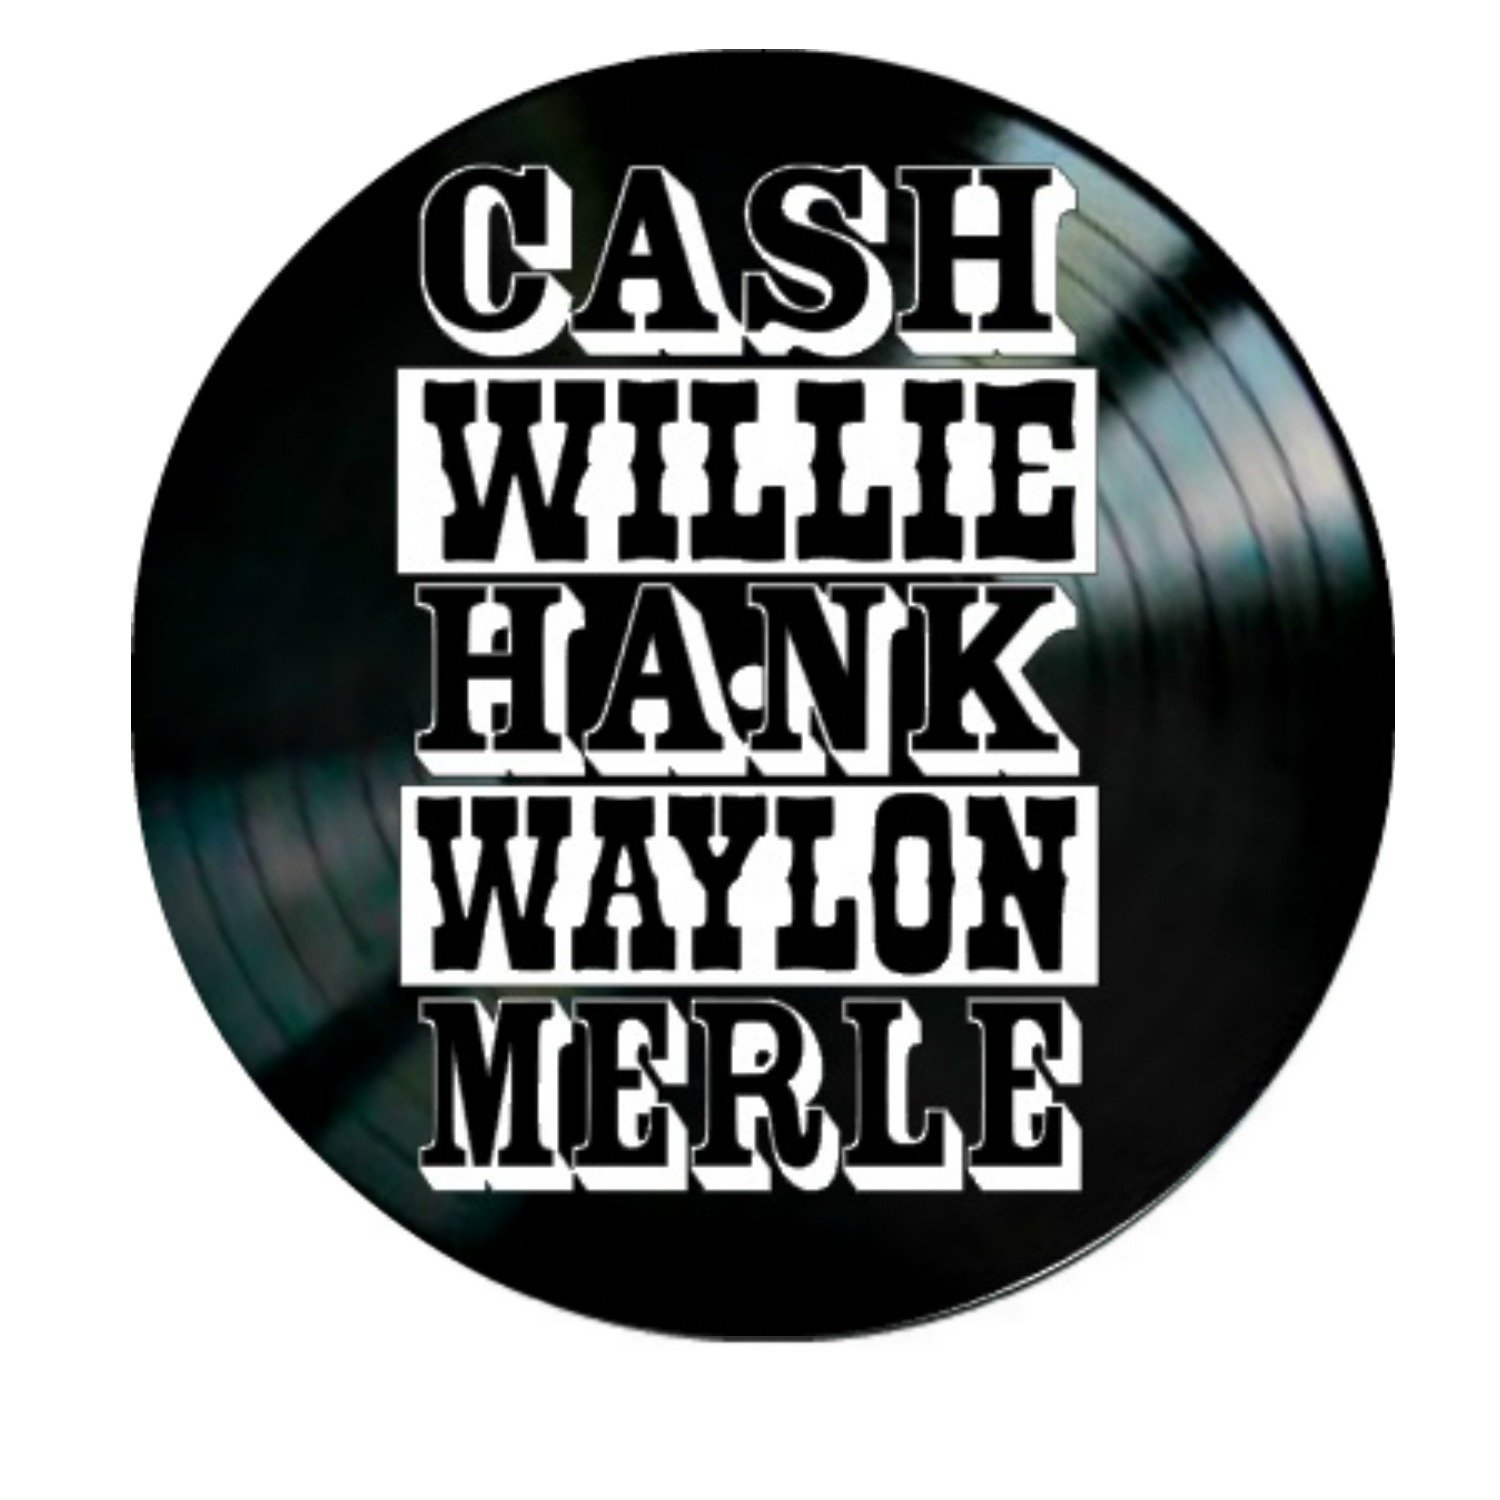 Cash, Willie, Hank, Waylon, Merle Country Musics Greatest Artists on a Vinyl Record Wall Decor